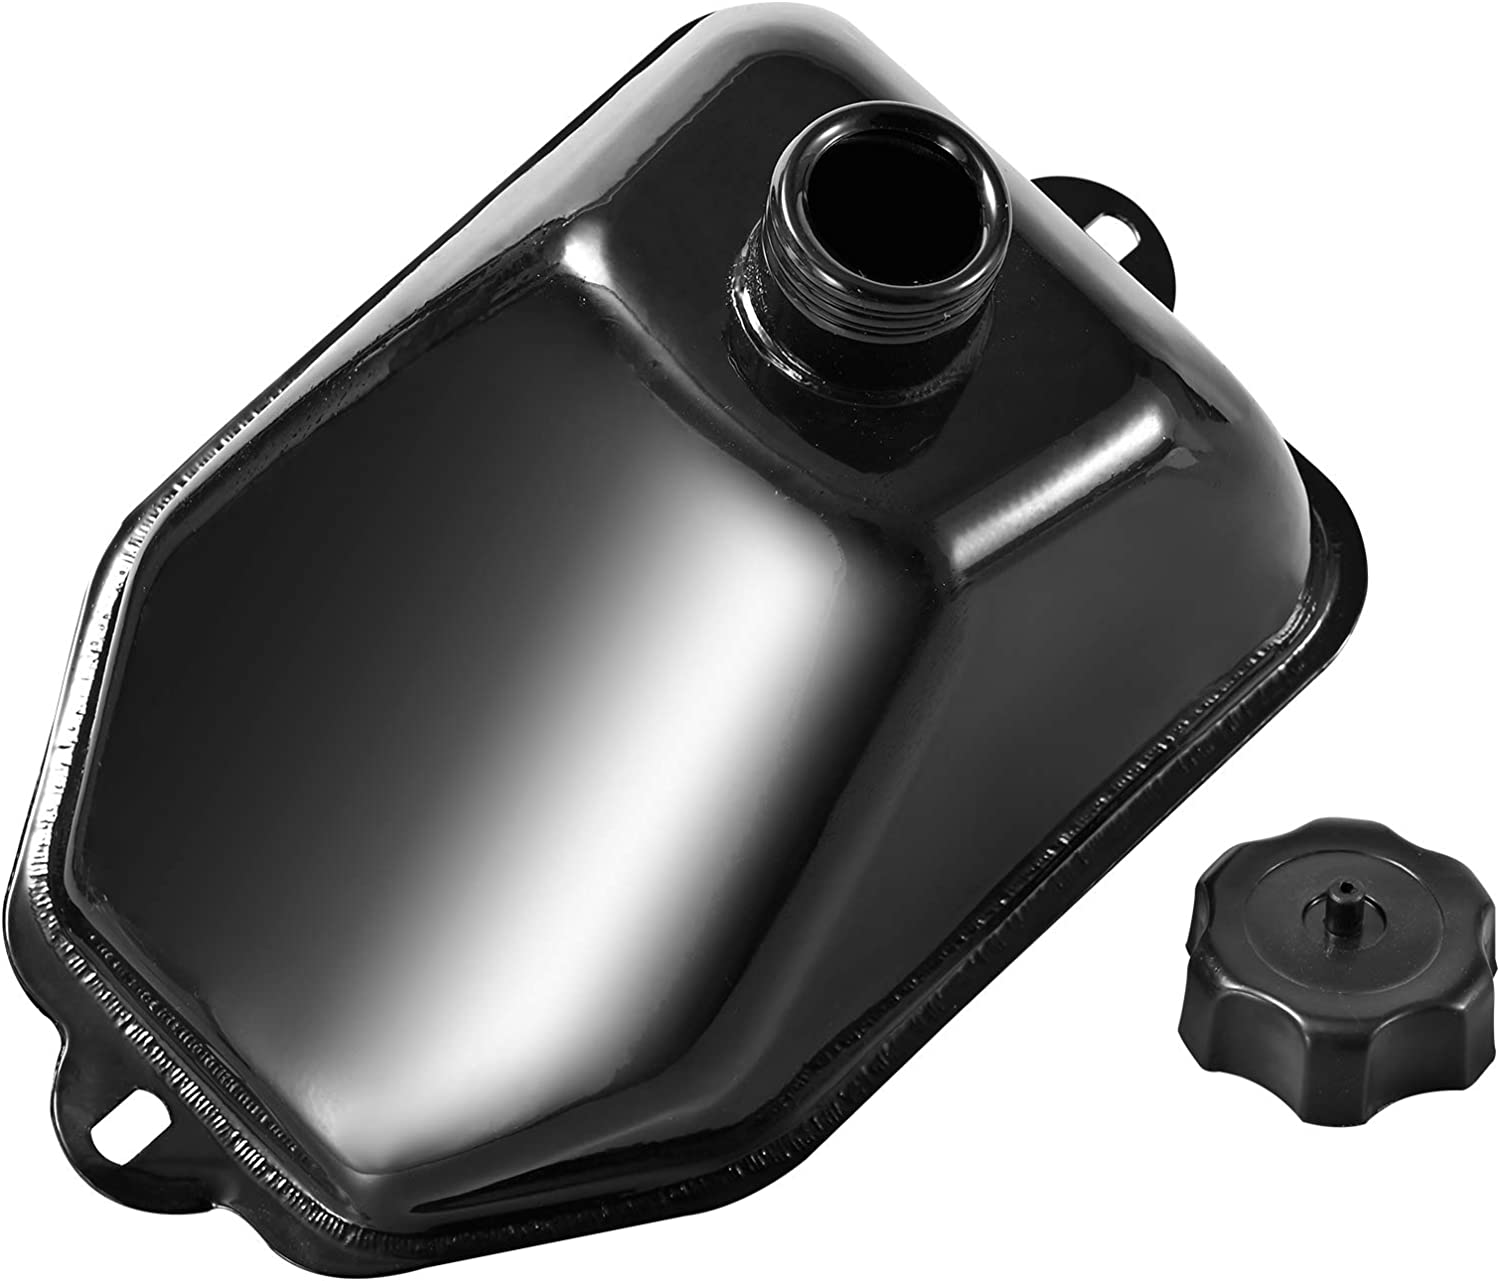 IYOBCXIHO Gas tank for Atv with swit fuel Super intense SALE metal Ranking integrated 1st place Quads